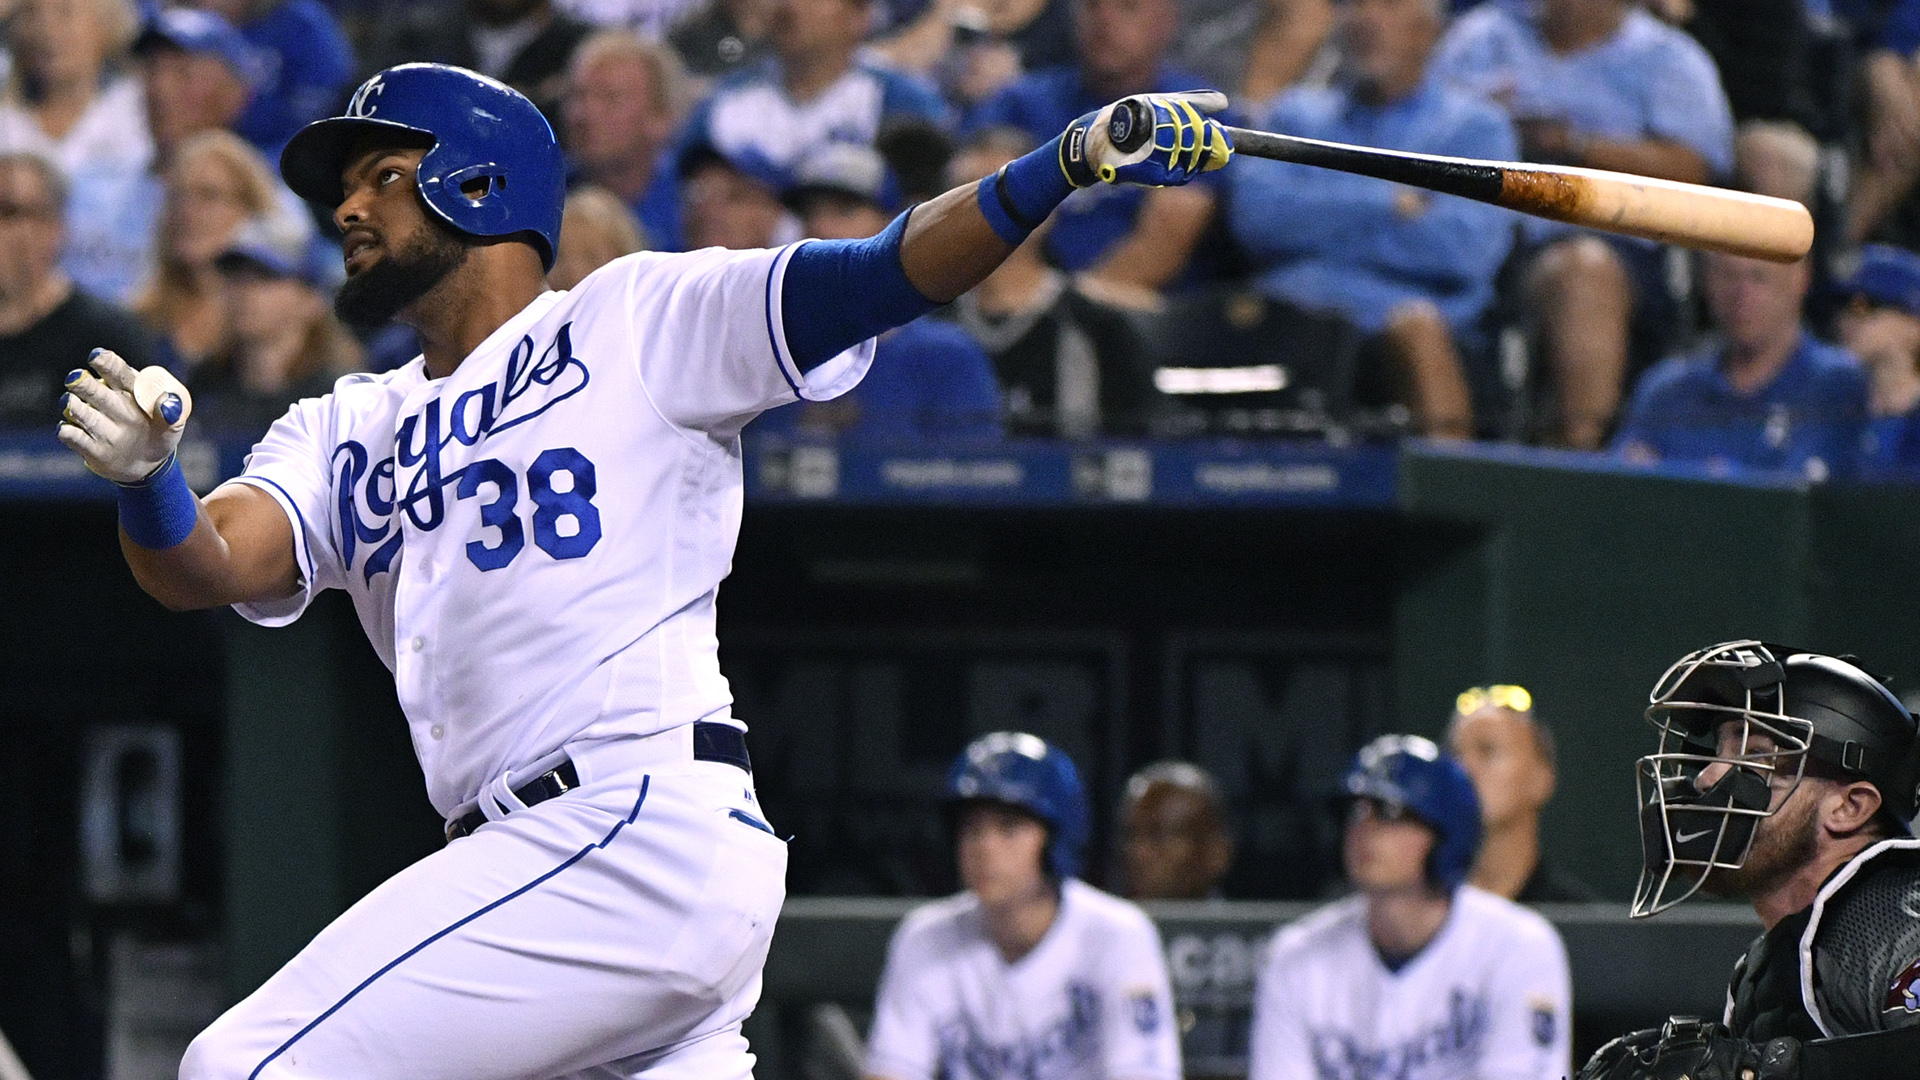 Royals outfielder Jorge Bonifacio is suspended 80 games for steroid use